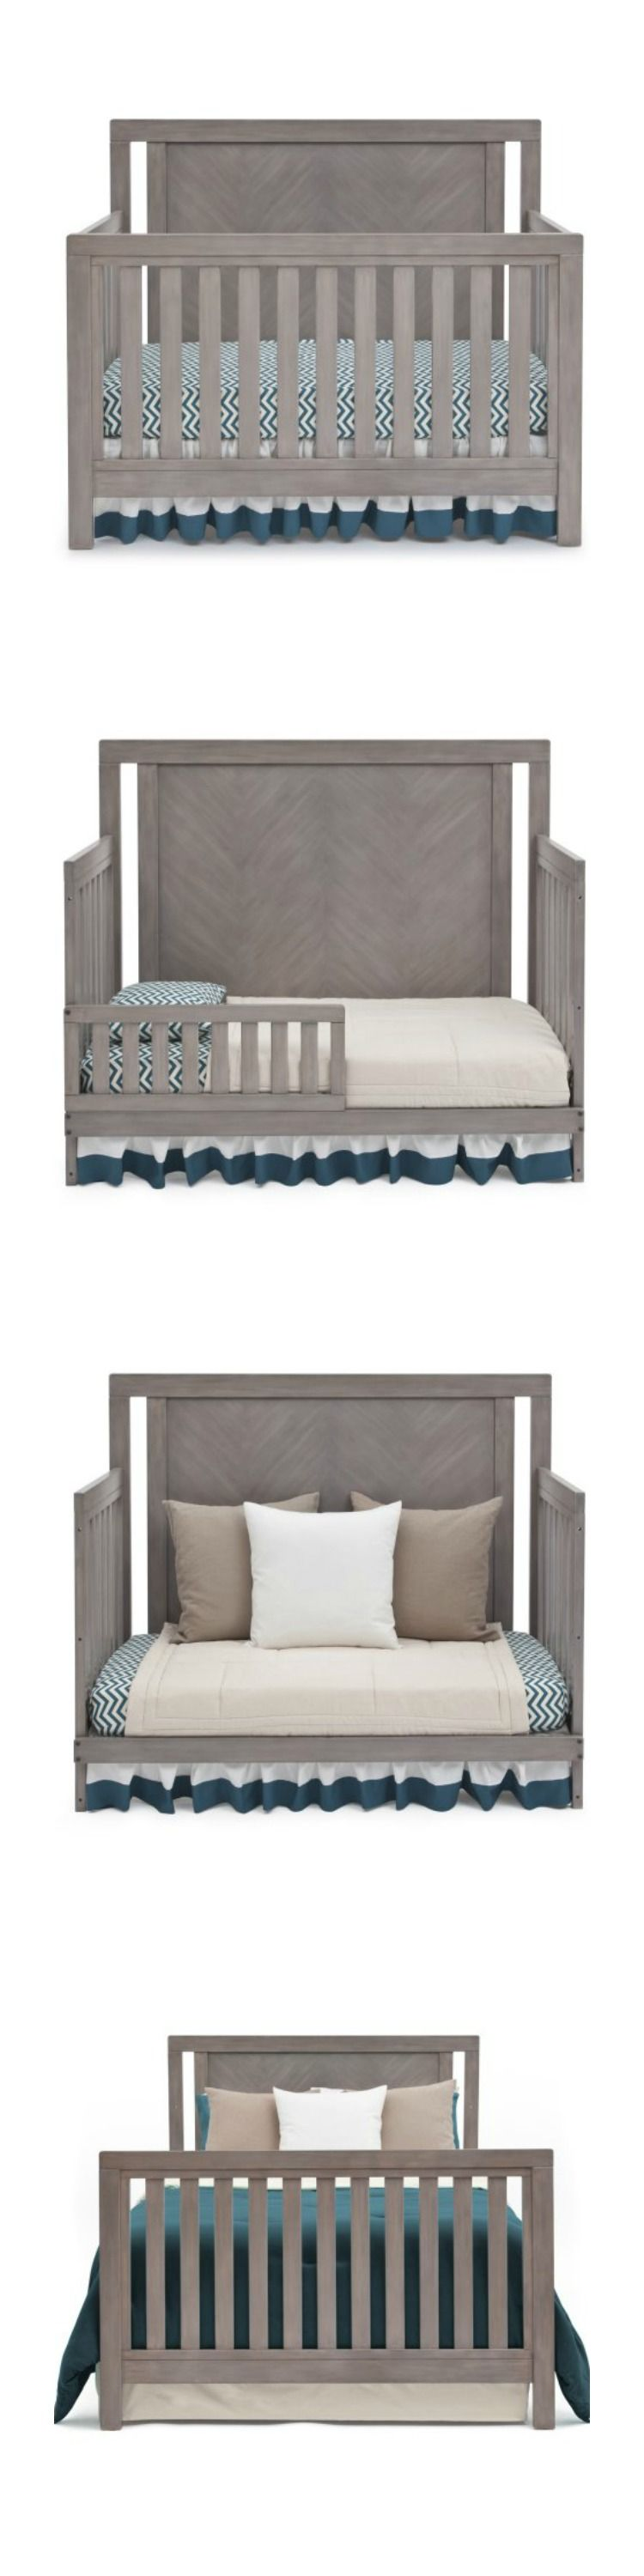 item america convertible bars tribute without ssc with products by ahfa crib young slats cribs seasons b all